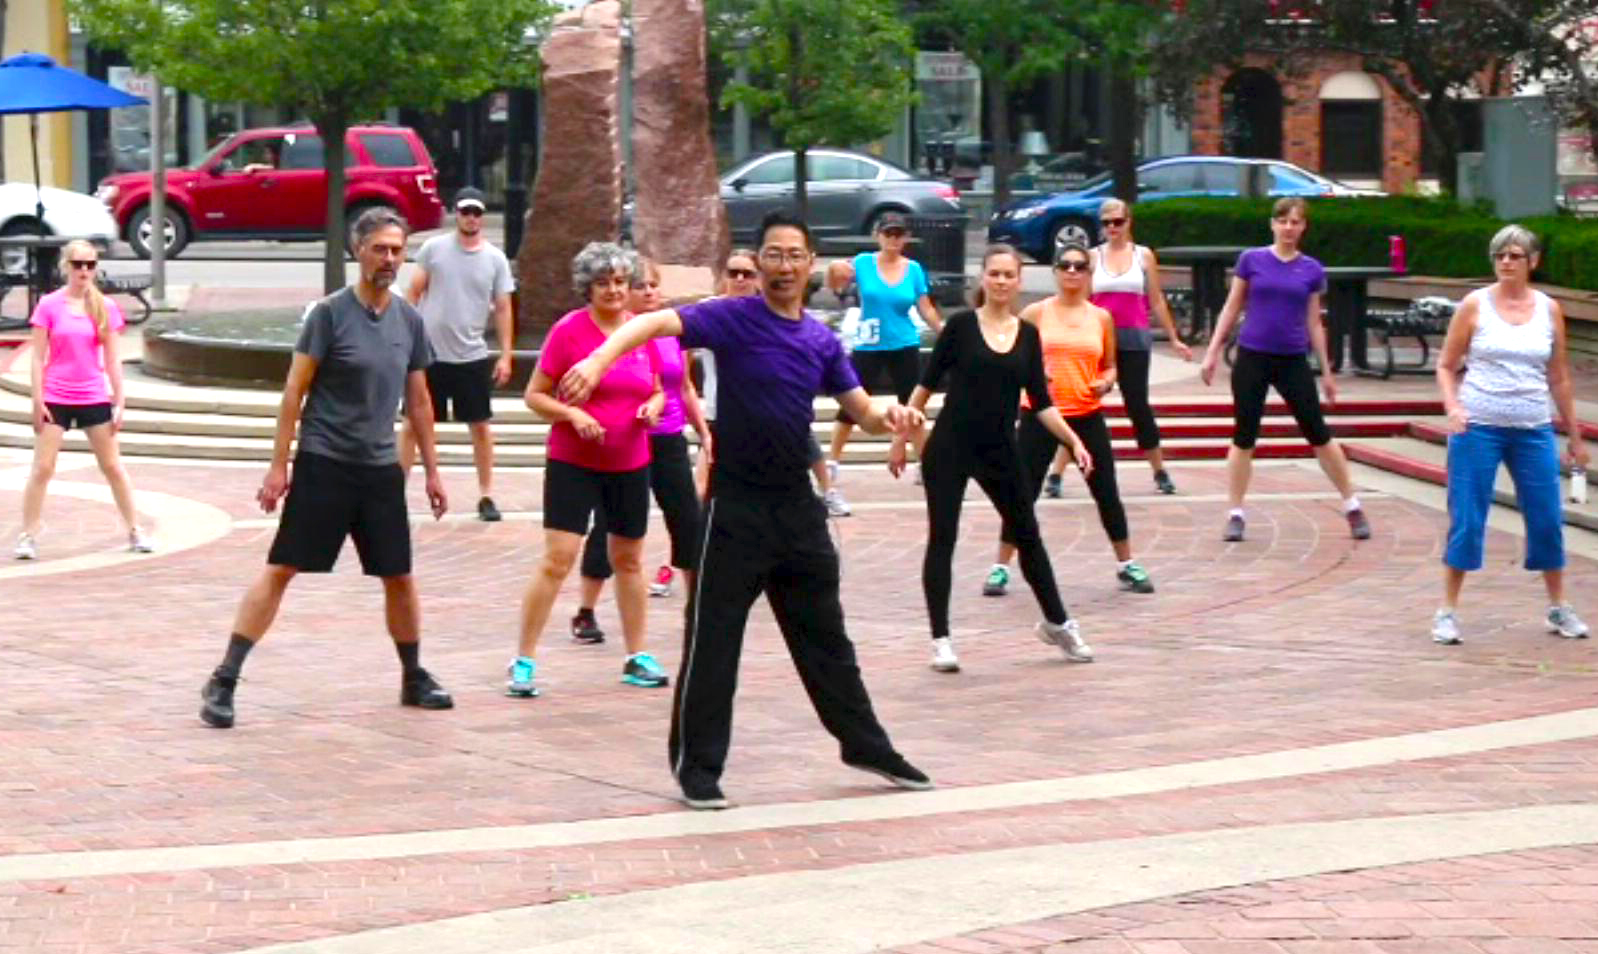 """Fit in the Core"" – FREE Outdoor danceTONE Fitness & danceFLOW QiGong/Taichi Classes"